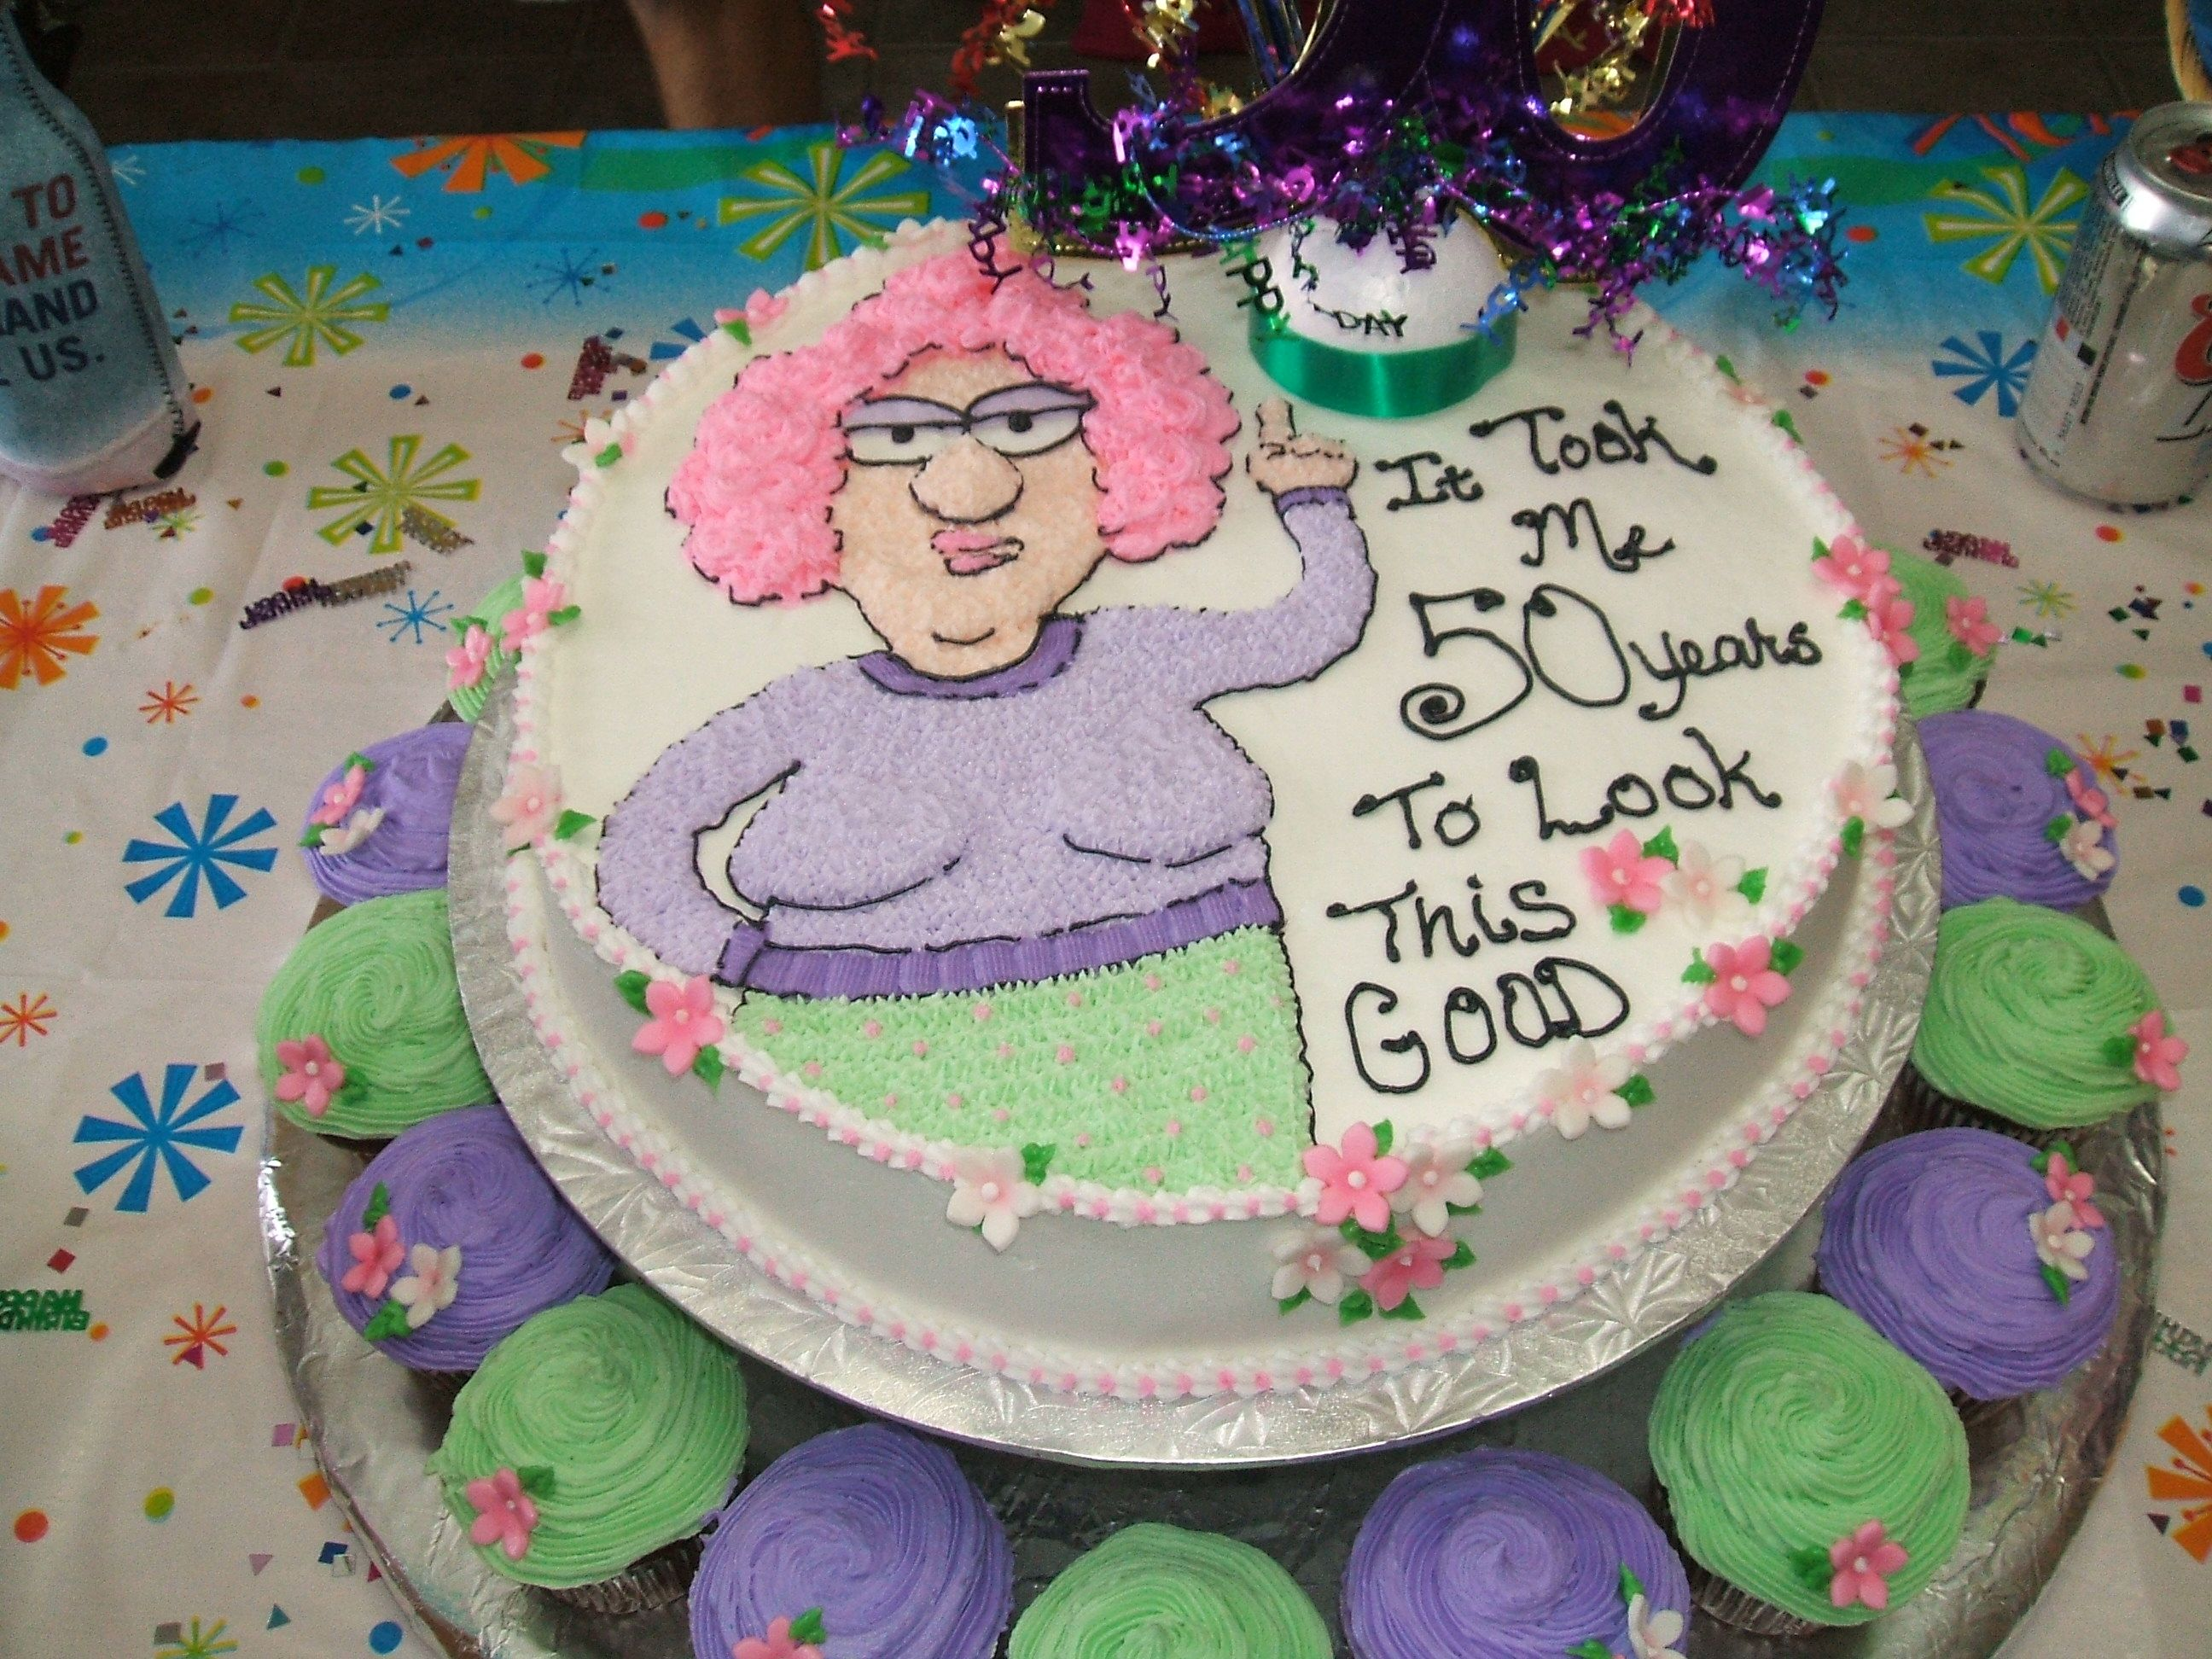 Pin by Fiona nicoll on Birthday cake messages in 2020